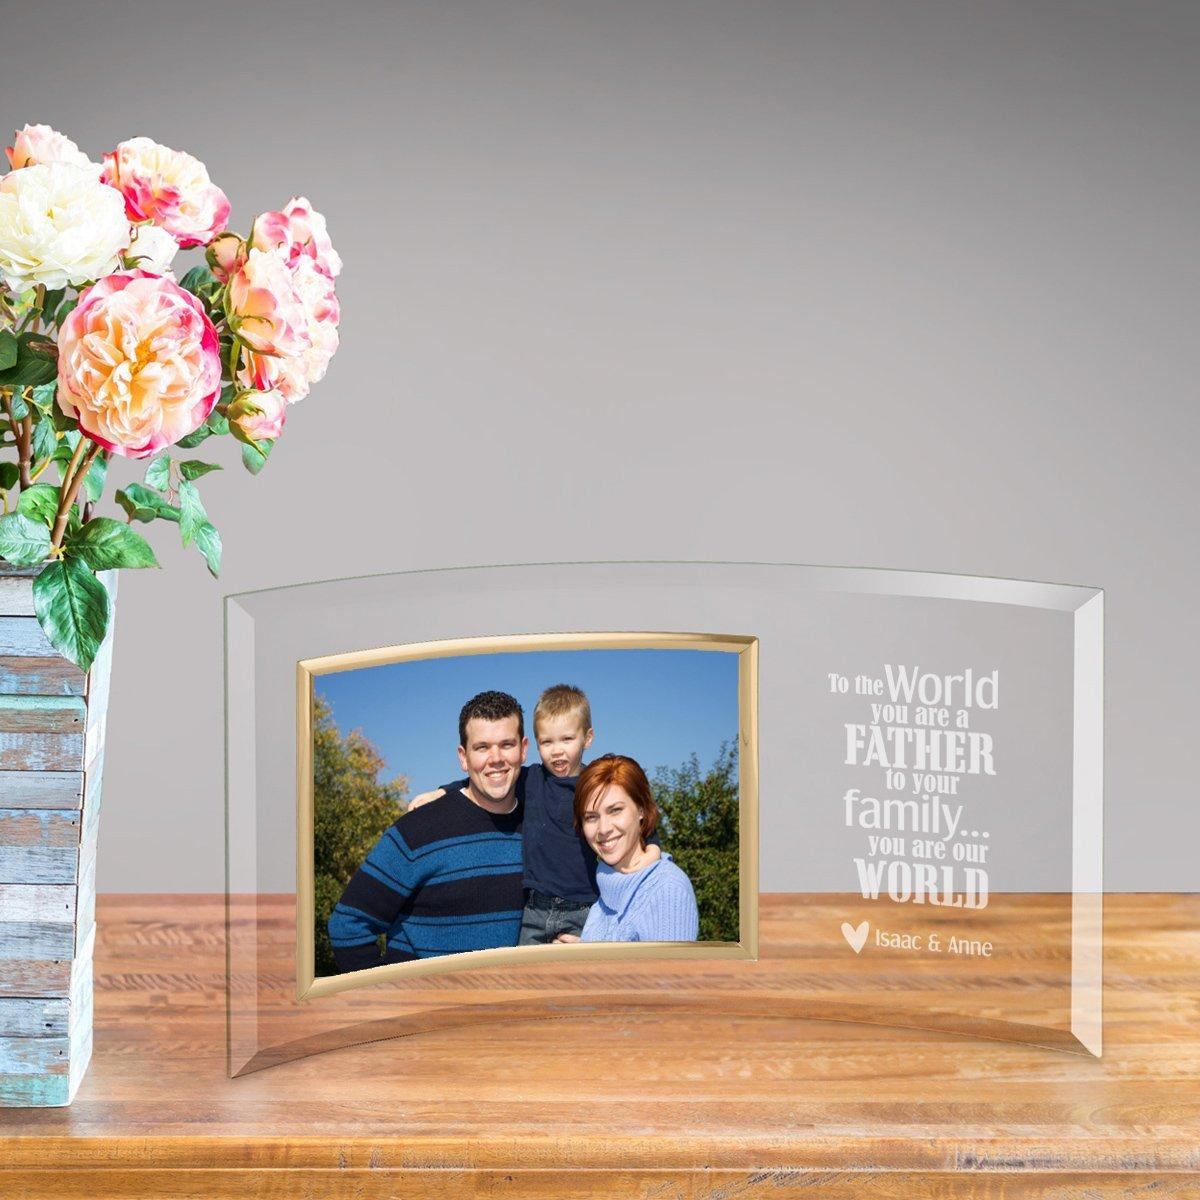 Personalized Father You Are Our World Glass Picture Frame